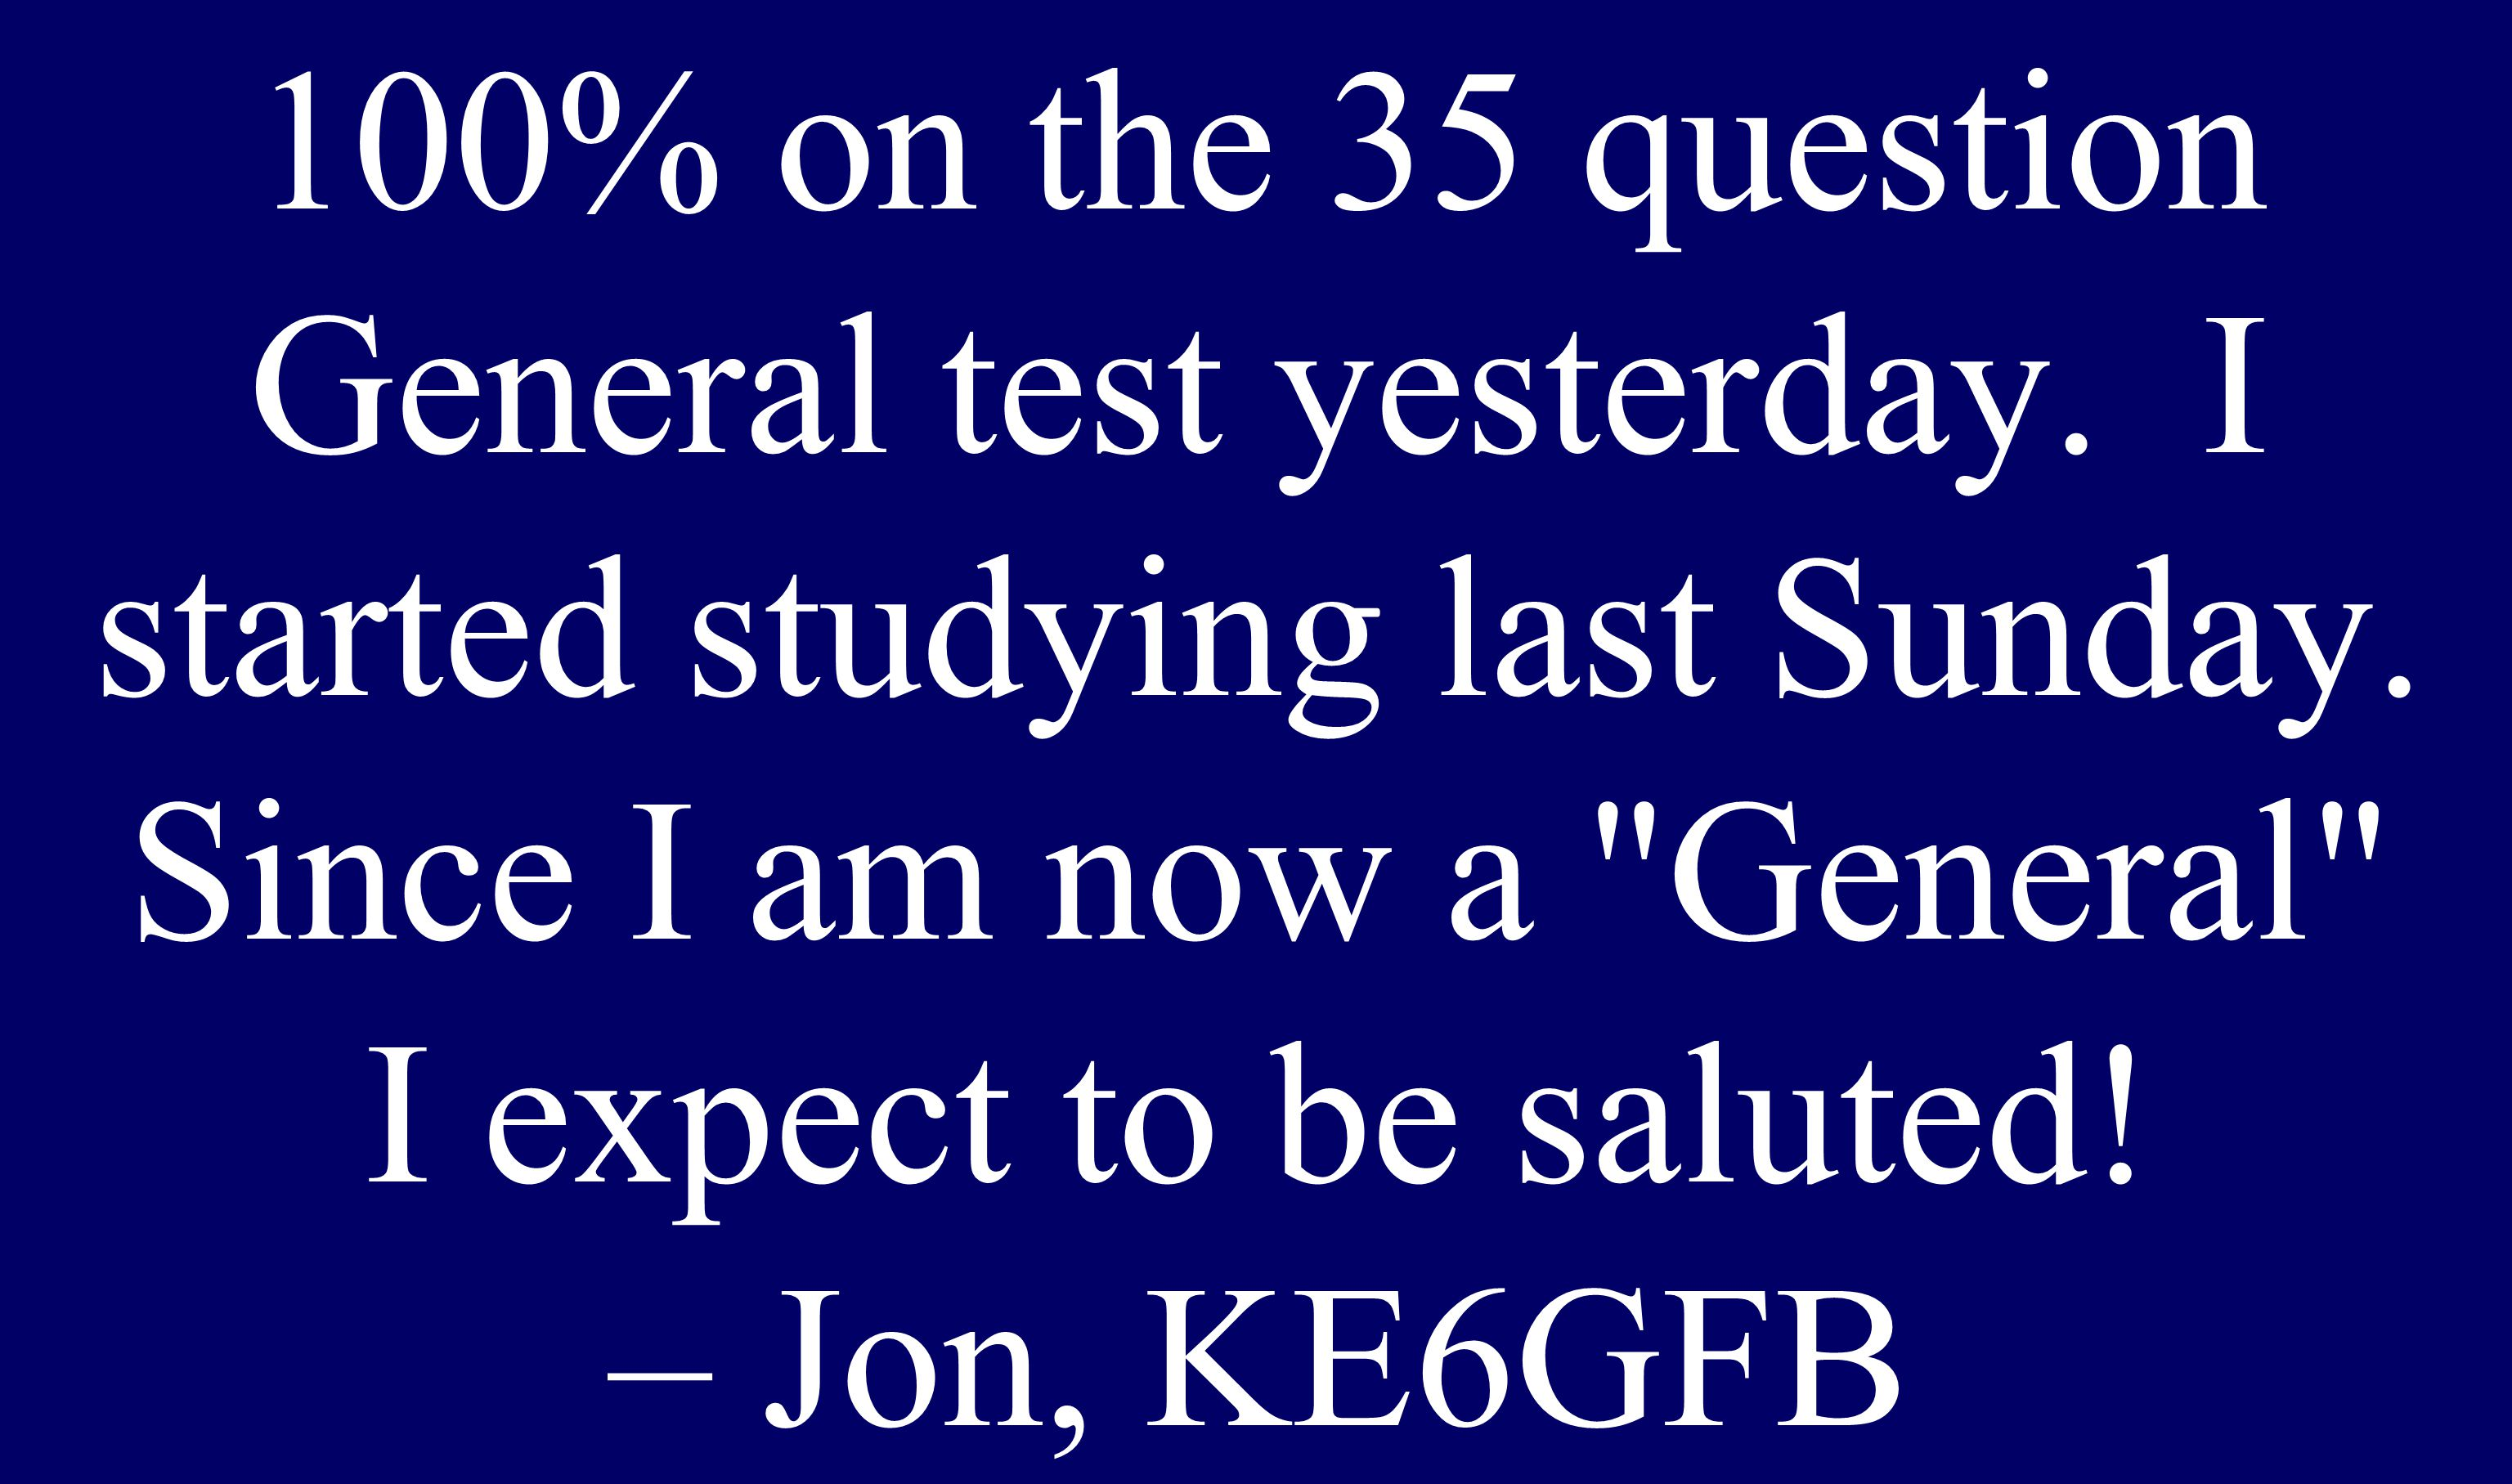 100% on the 35 question General test yesterday.I started studying last Sunday.